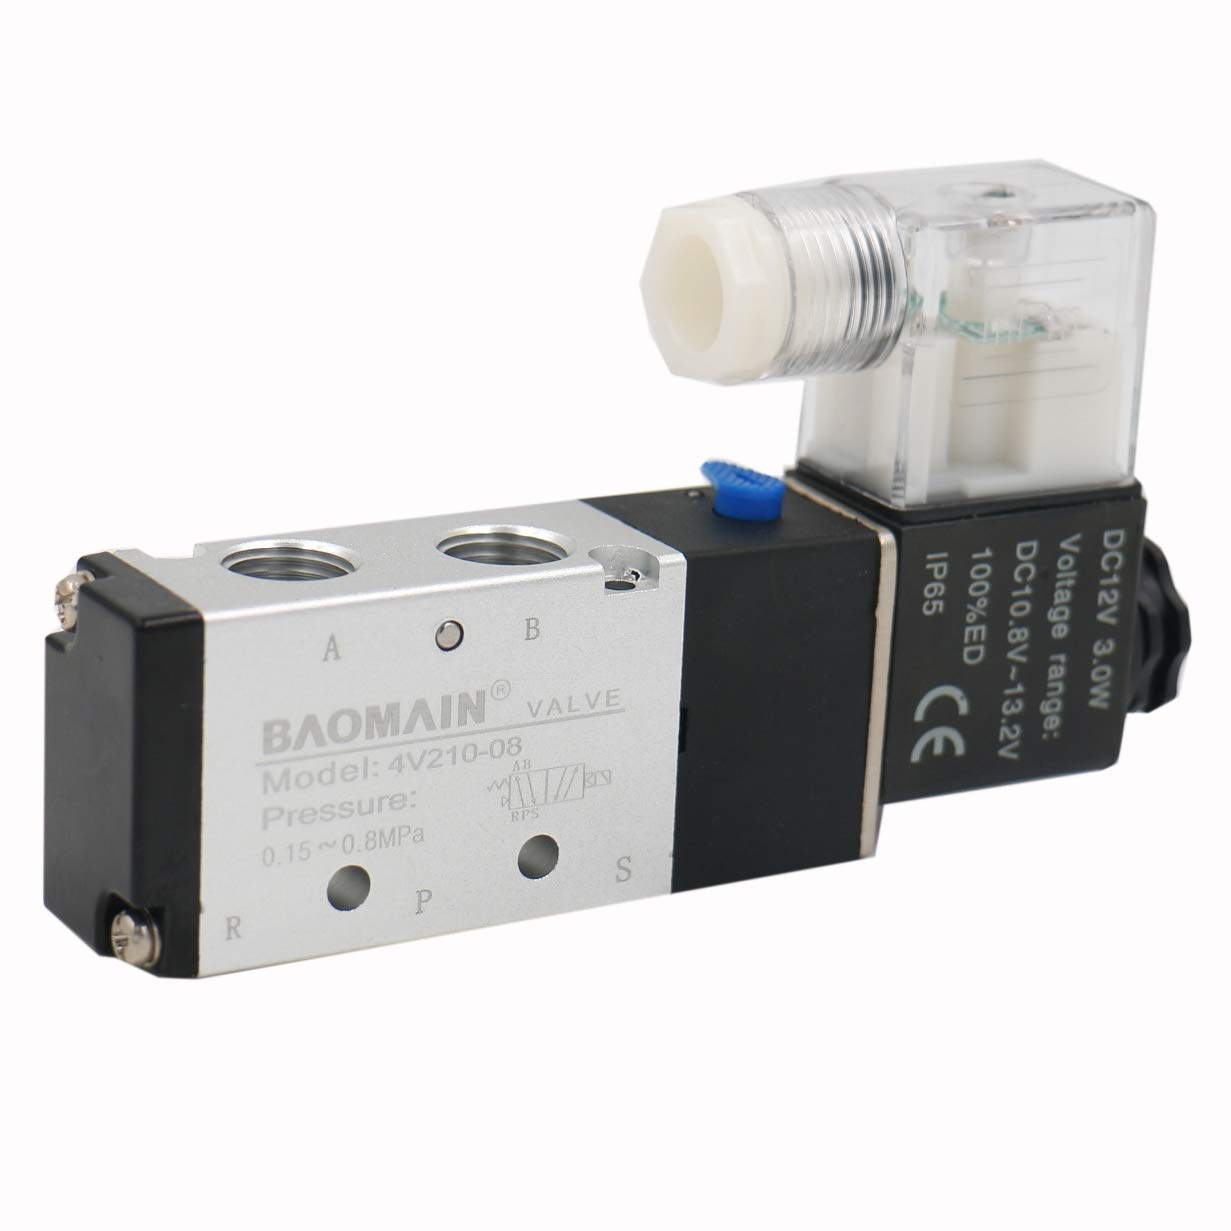 Baomain Pneumatic Air Control Solenoid Valve 4V210-08 DC 12V 5 Way 2 Position PT1/4 Internally Piloted Acting Type Single Electrical Control by Baomain